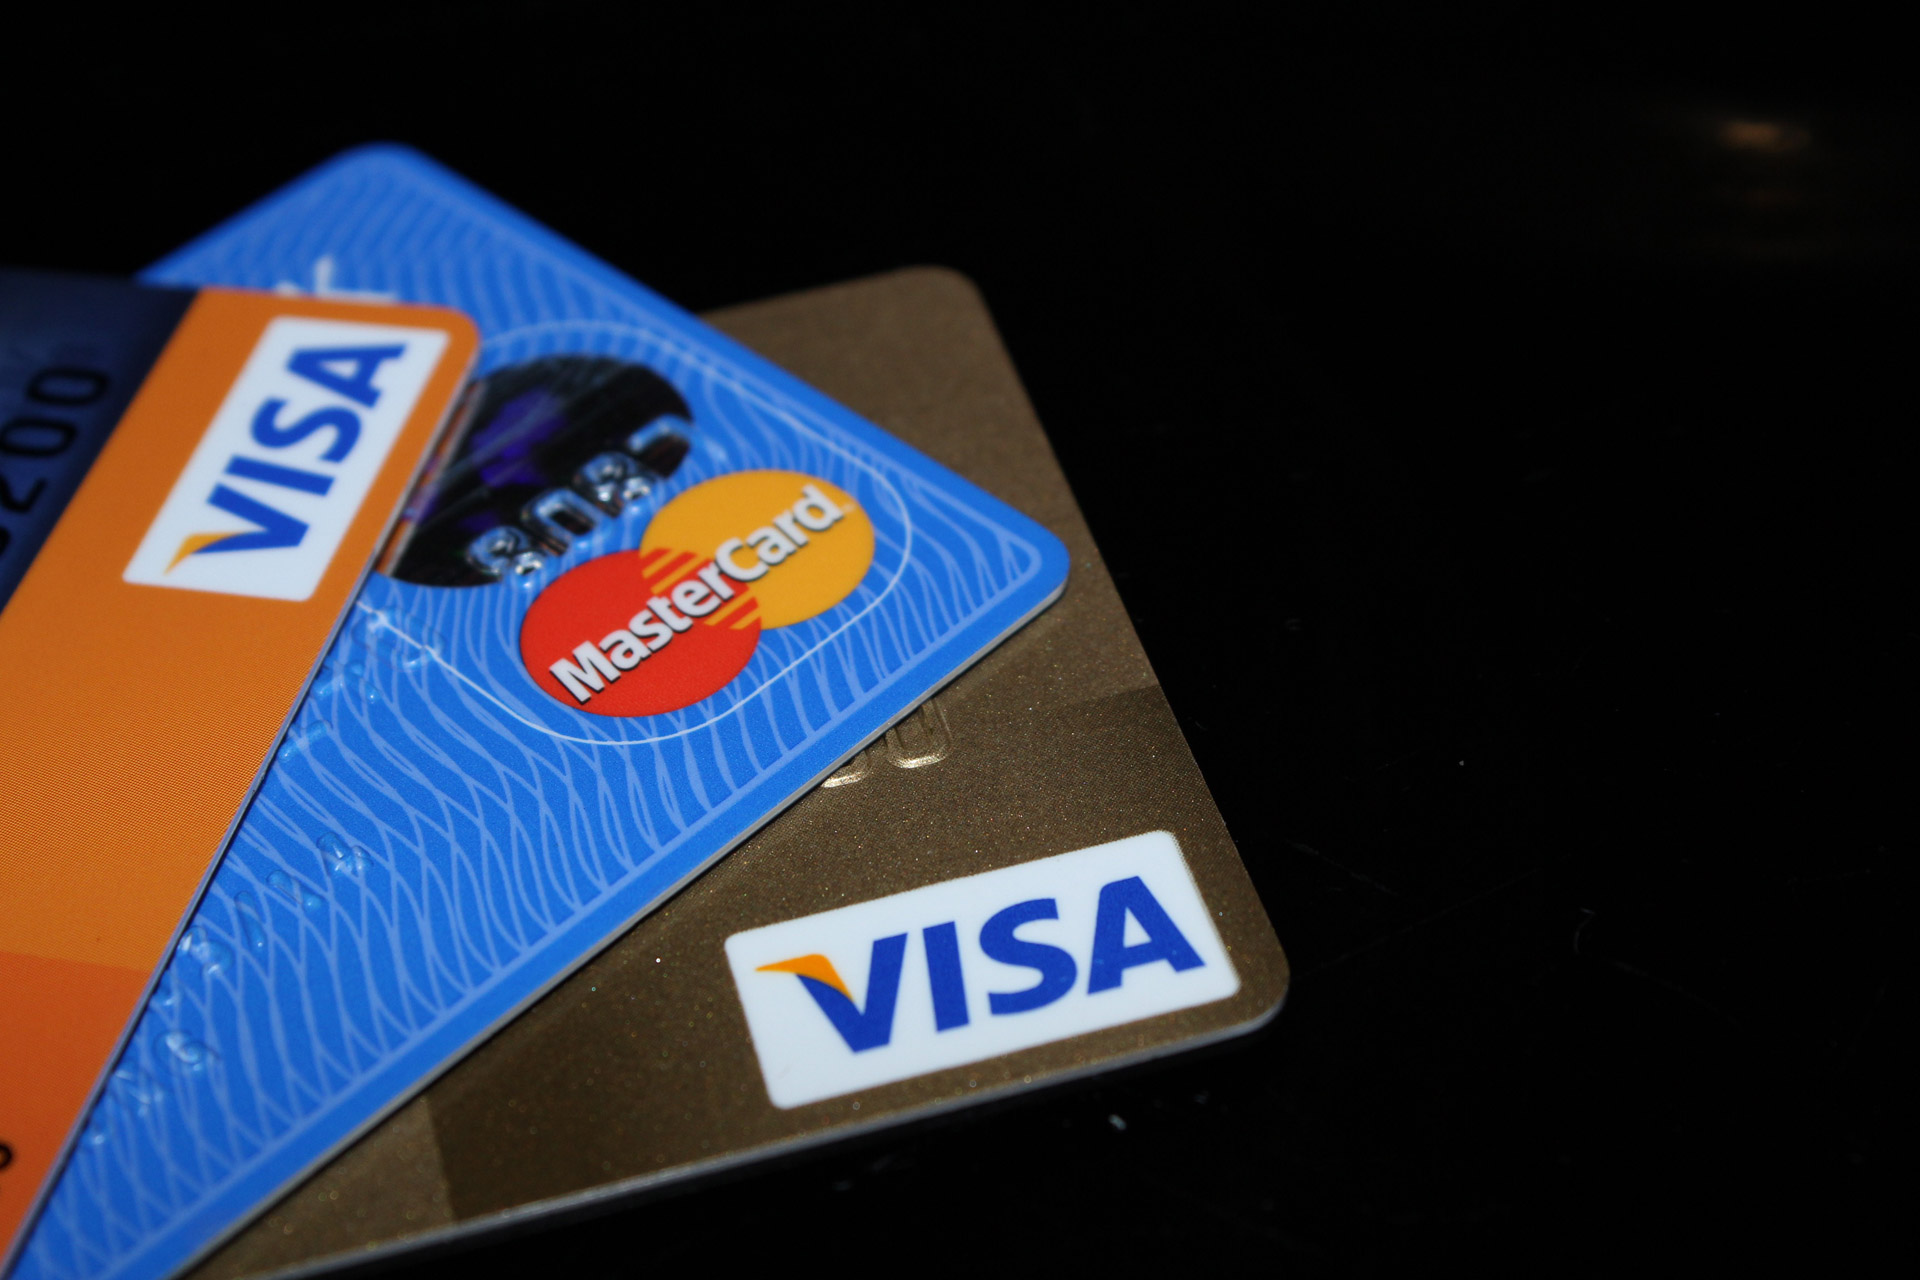 Credit cards,atm,cash card,debit card,cards - free image from needpix.com